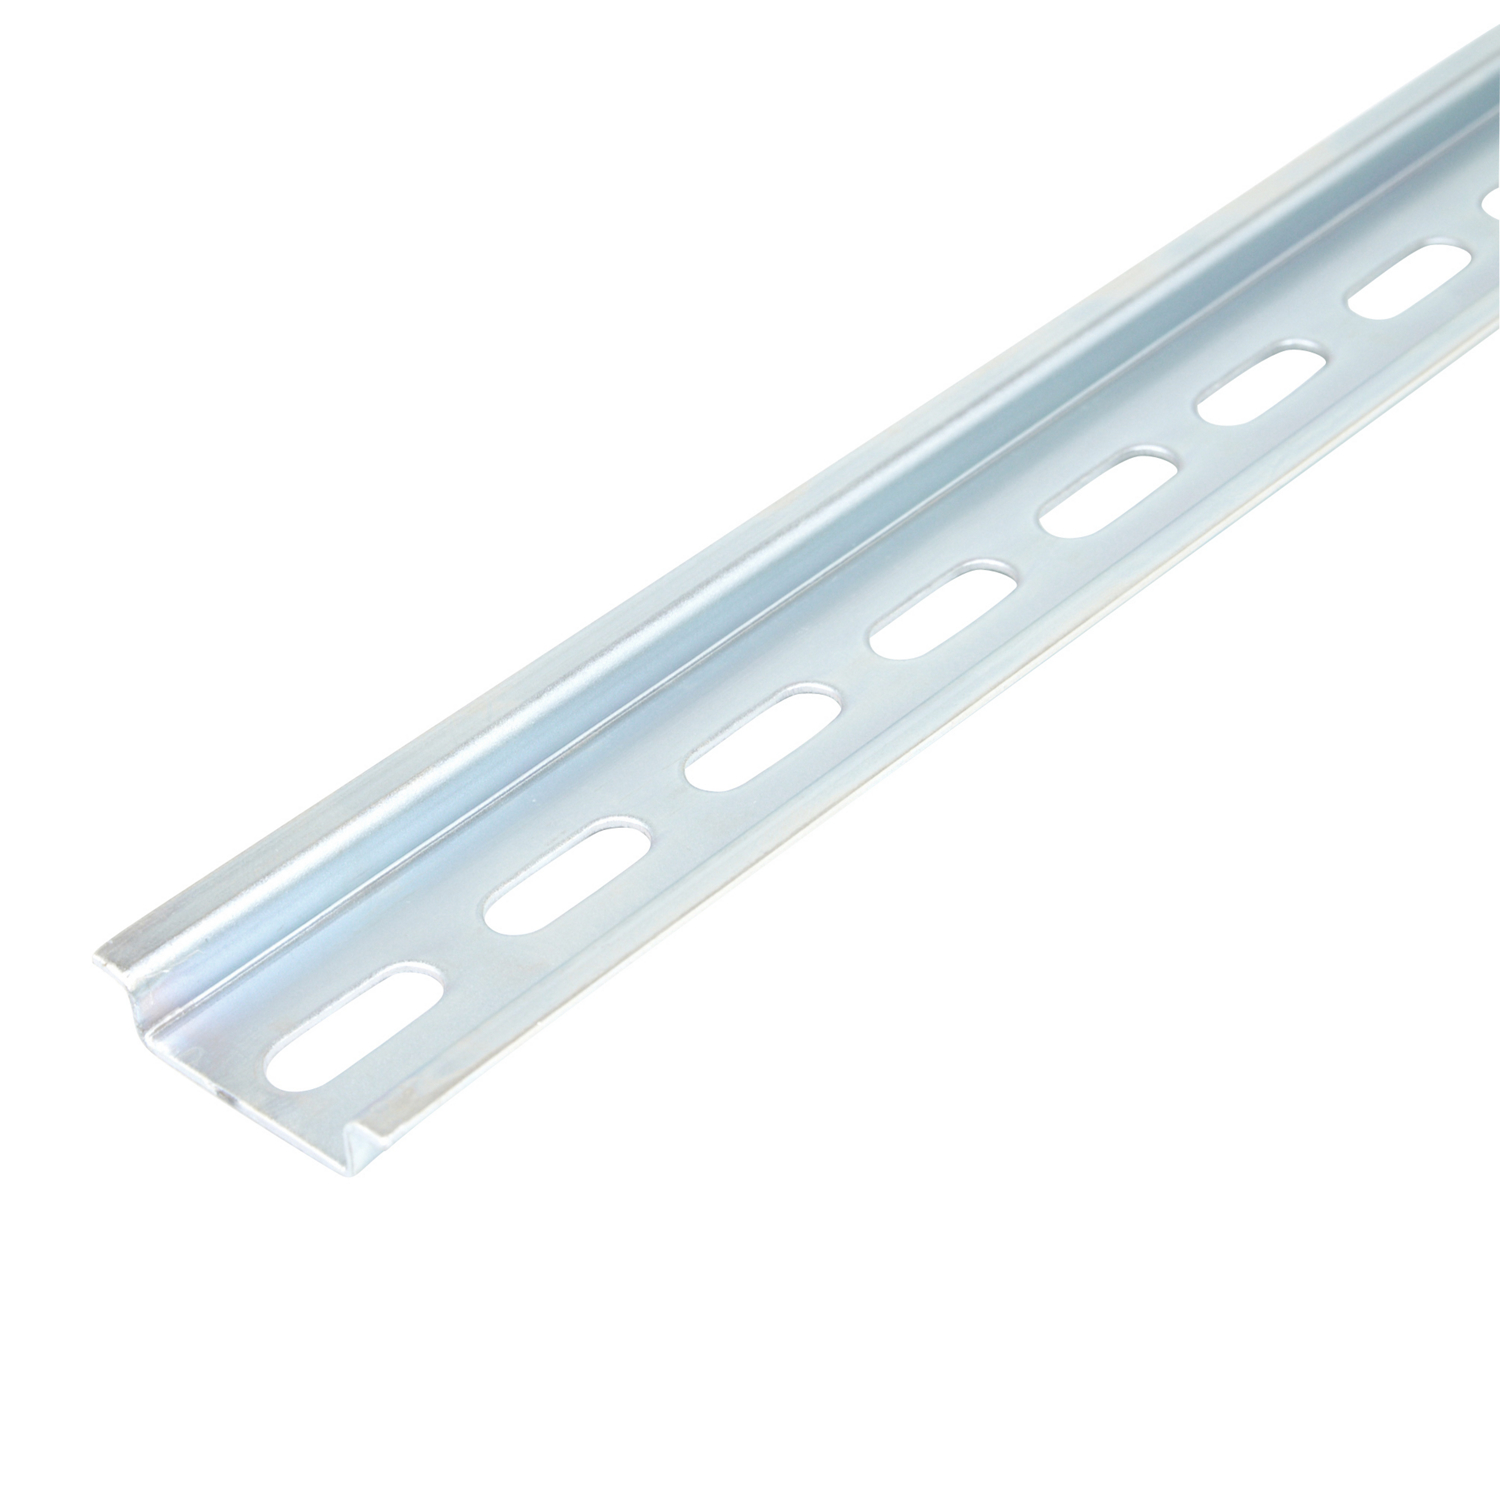 ABB,010150804,ABB 010150804 Symmetrical Mounting Rail, 1 M L x 35 mm W x 7.5 mm H, Galvanized Steel